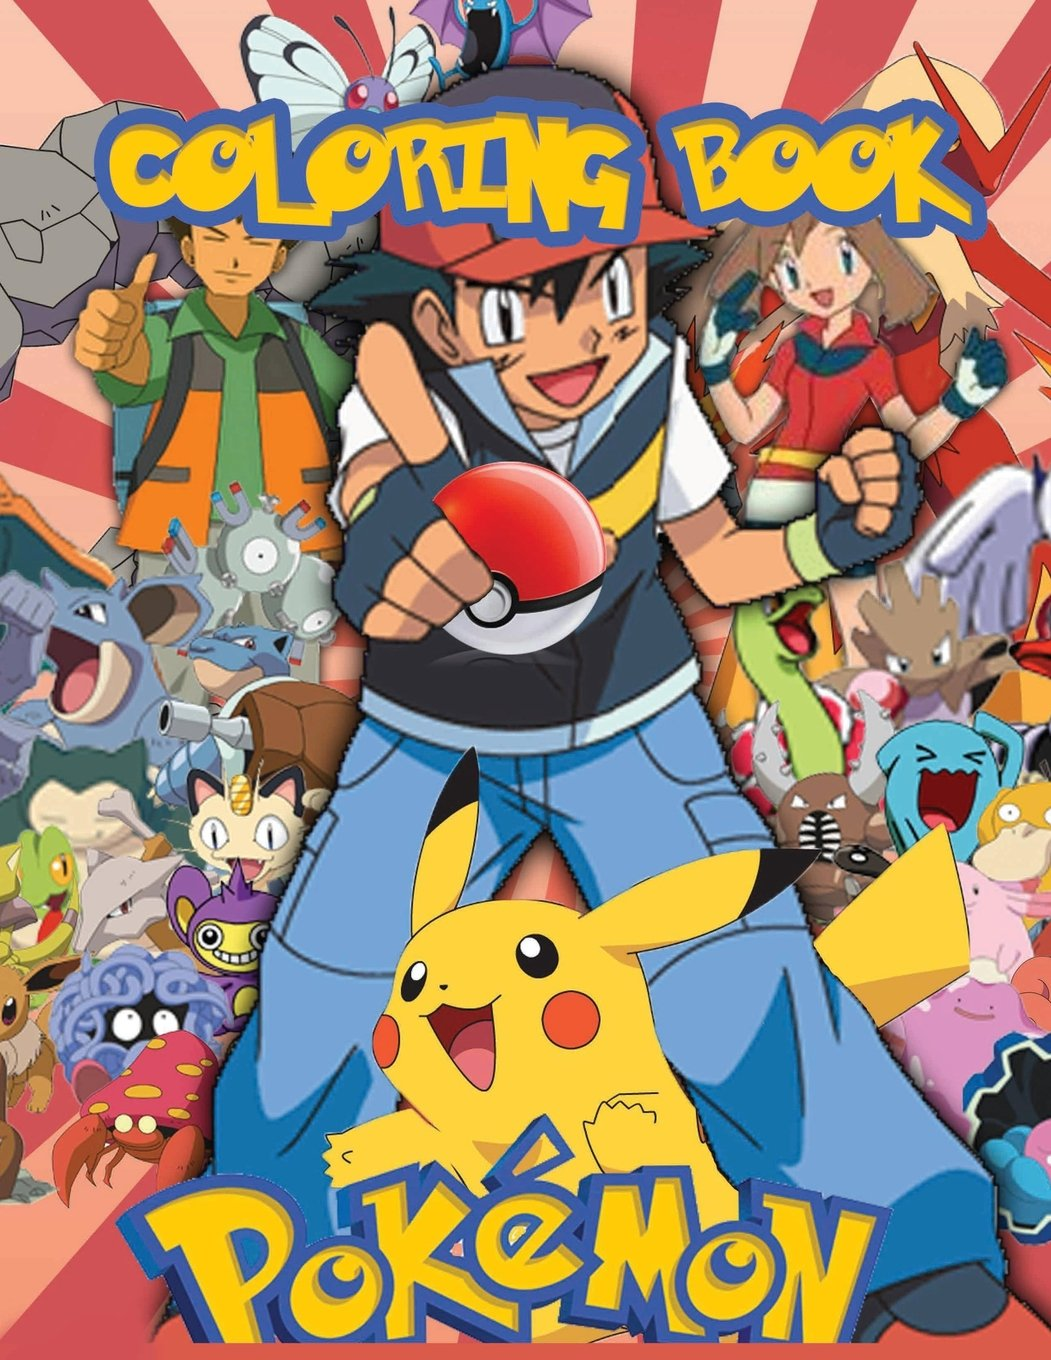 Pokemon Coloring Book Fantastic Coloring Pages Contains All The Characters Of The Pokemon Saga And Pokemon Go Lawrence Jim 9781720835127 Amazon Com Books